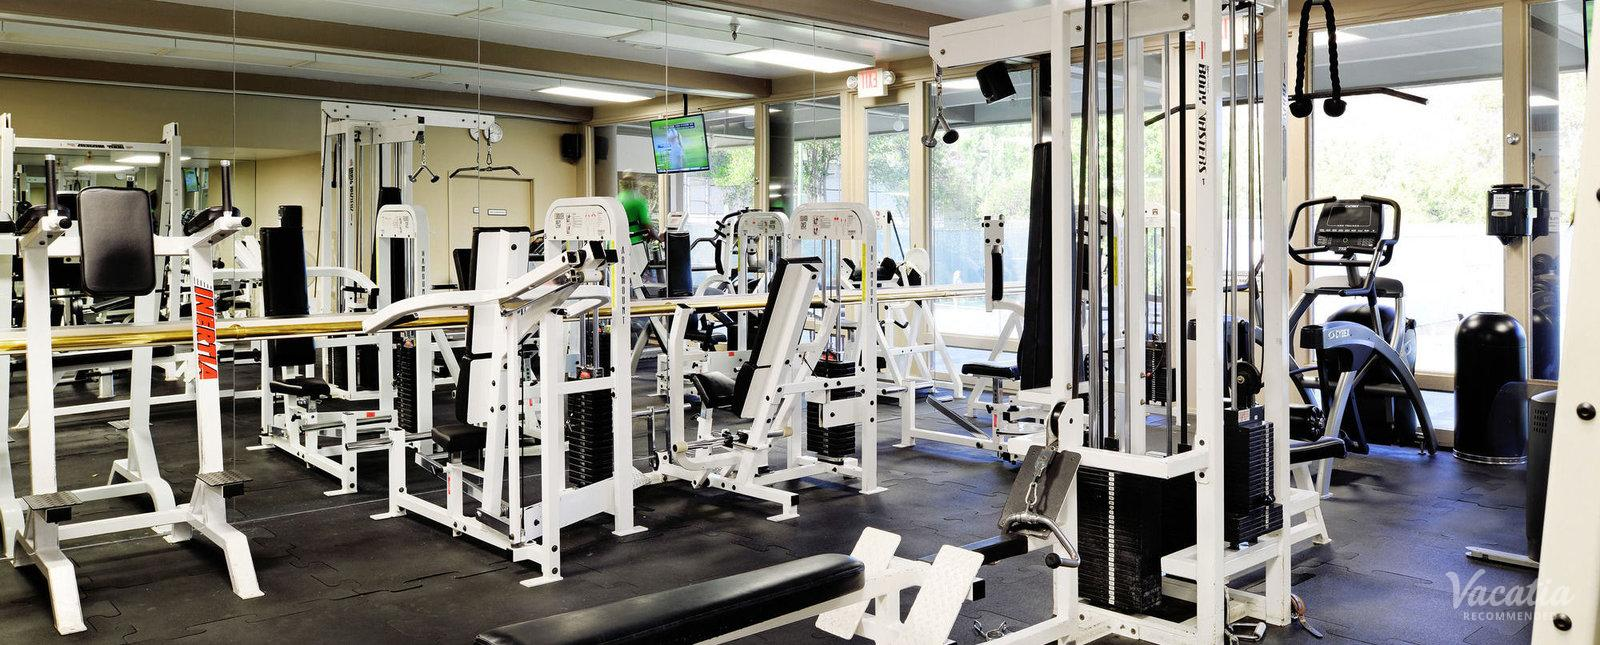 Riviera Oaks Resort & Racquet Club Fitness Center